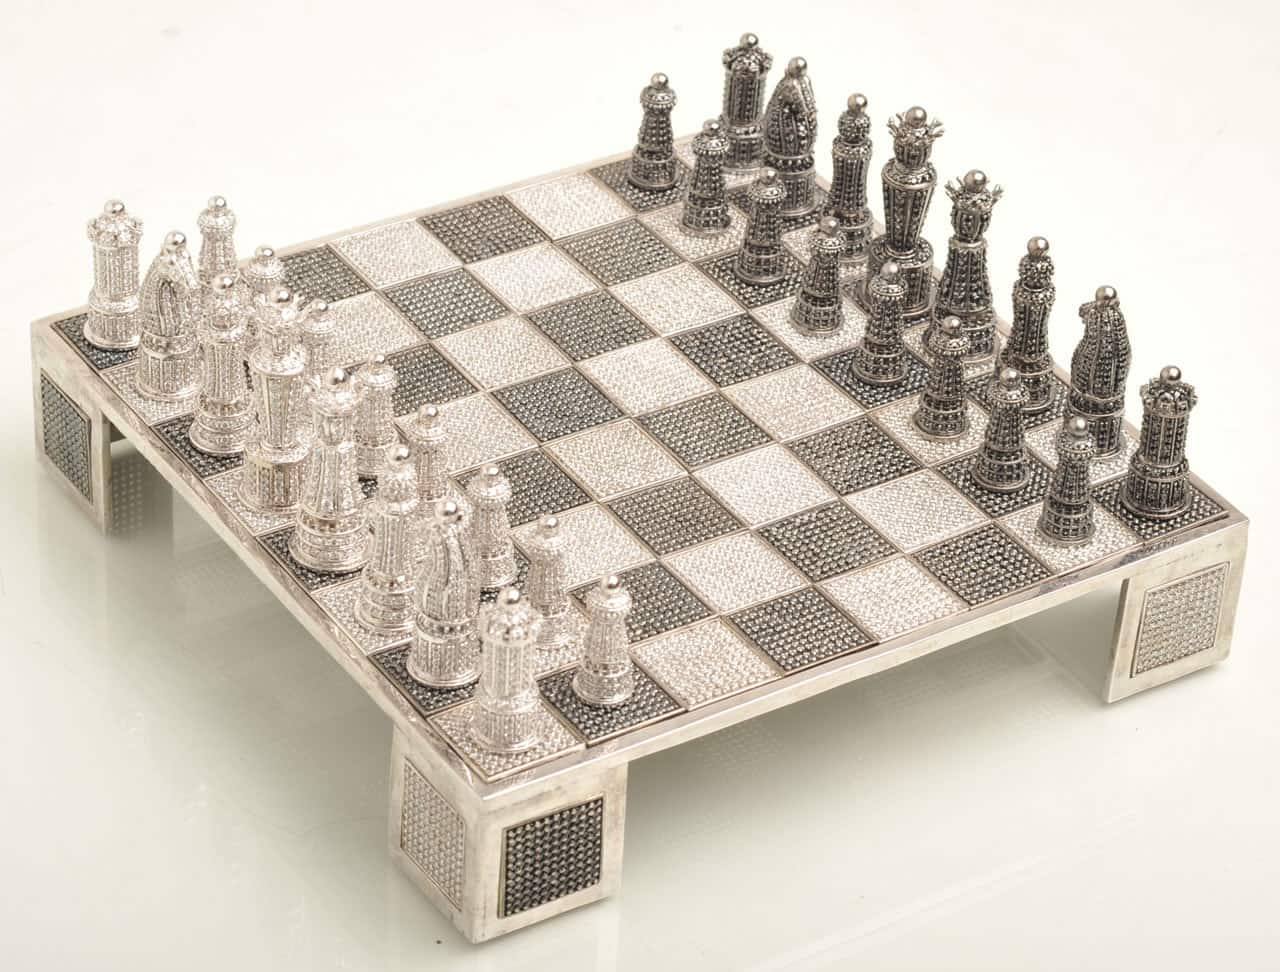 Swarovski encrusted chess set by jewel cast techno - Most expensive chess board ...